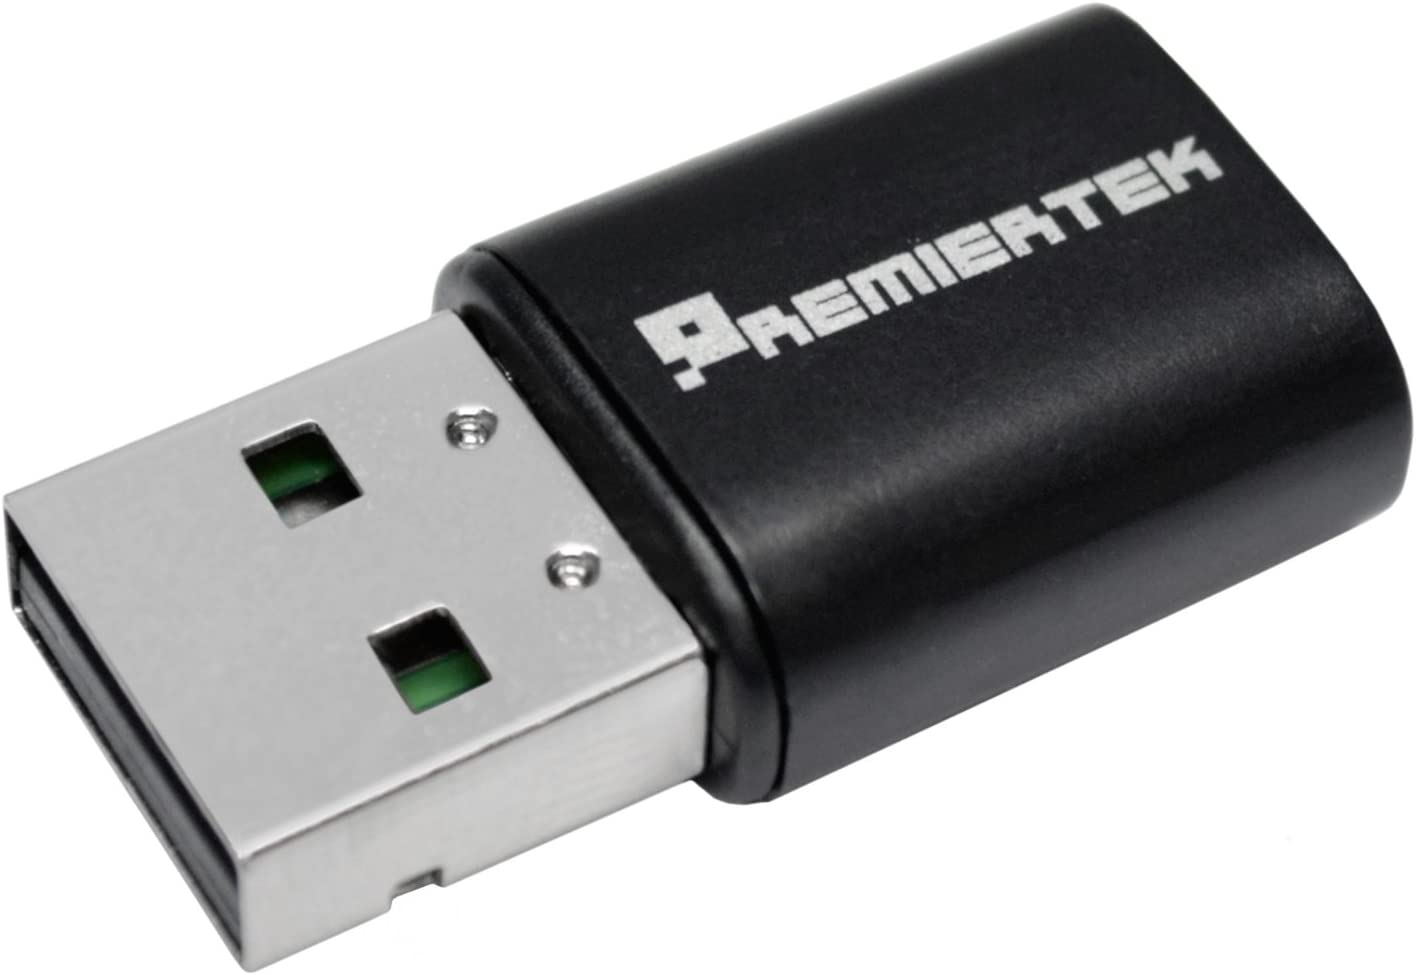 PT-8812AU Premiertek AC 1200 802.11a//b//g//n//ac Dual Band 2.4GHz//5GHz 2T2R Wireless USB 3.0 LAN Adapter up to 866Mbps Plus 300Mbps